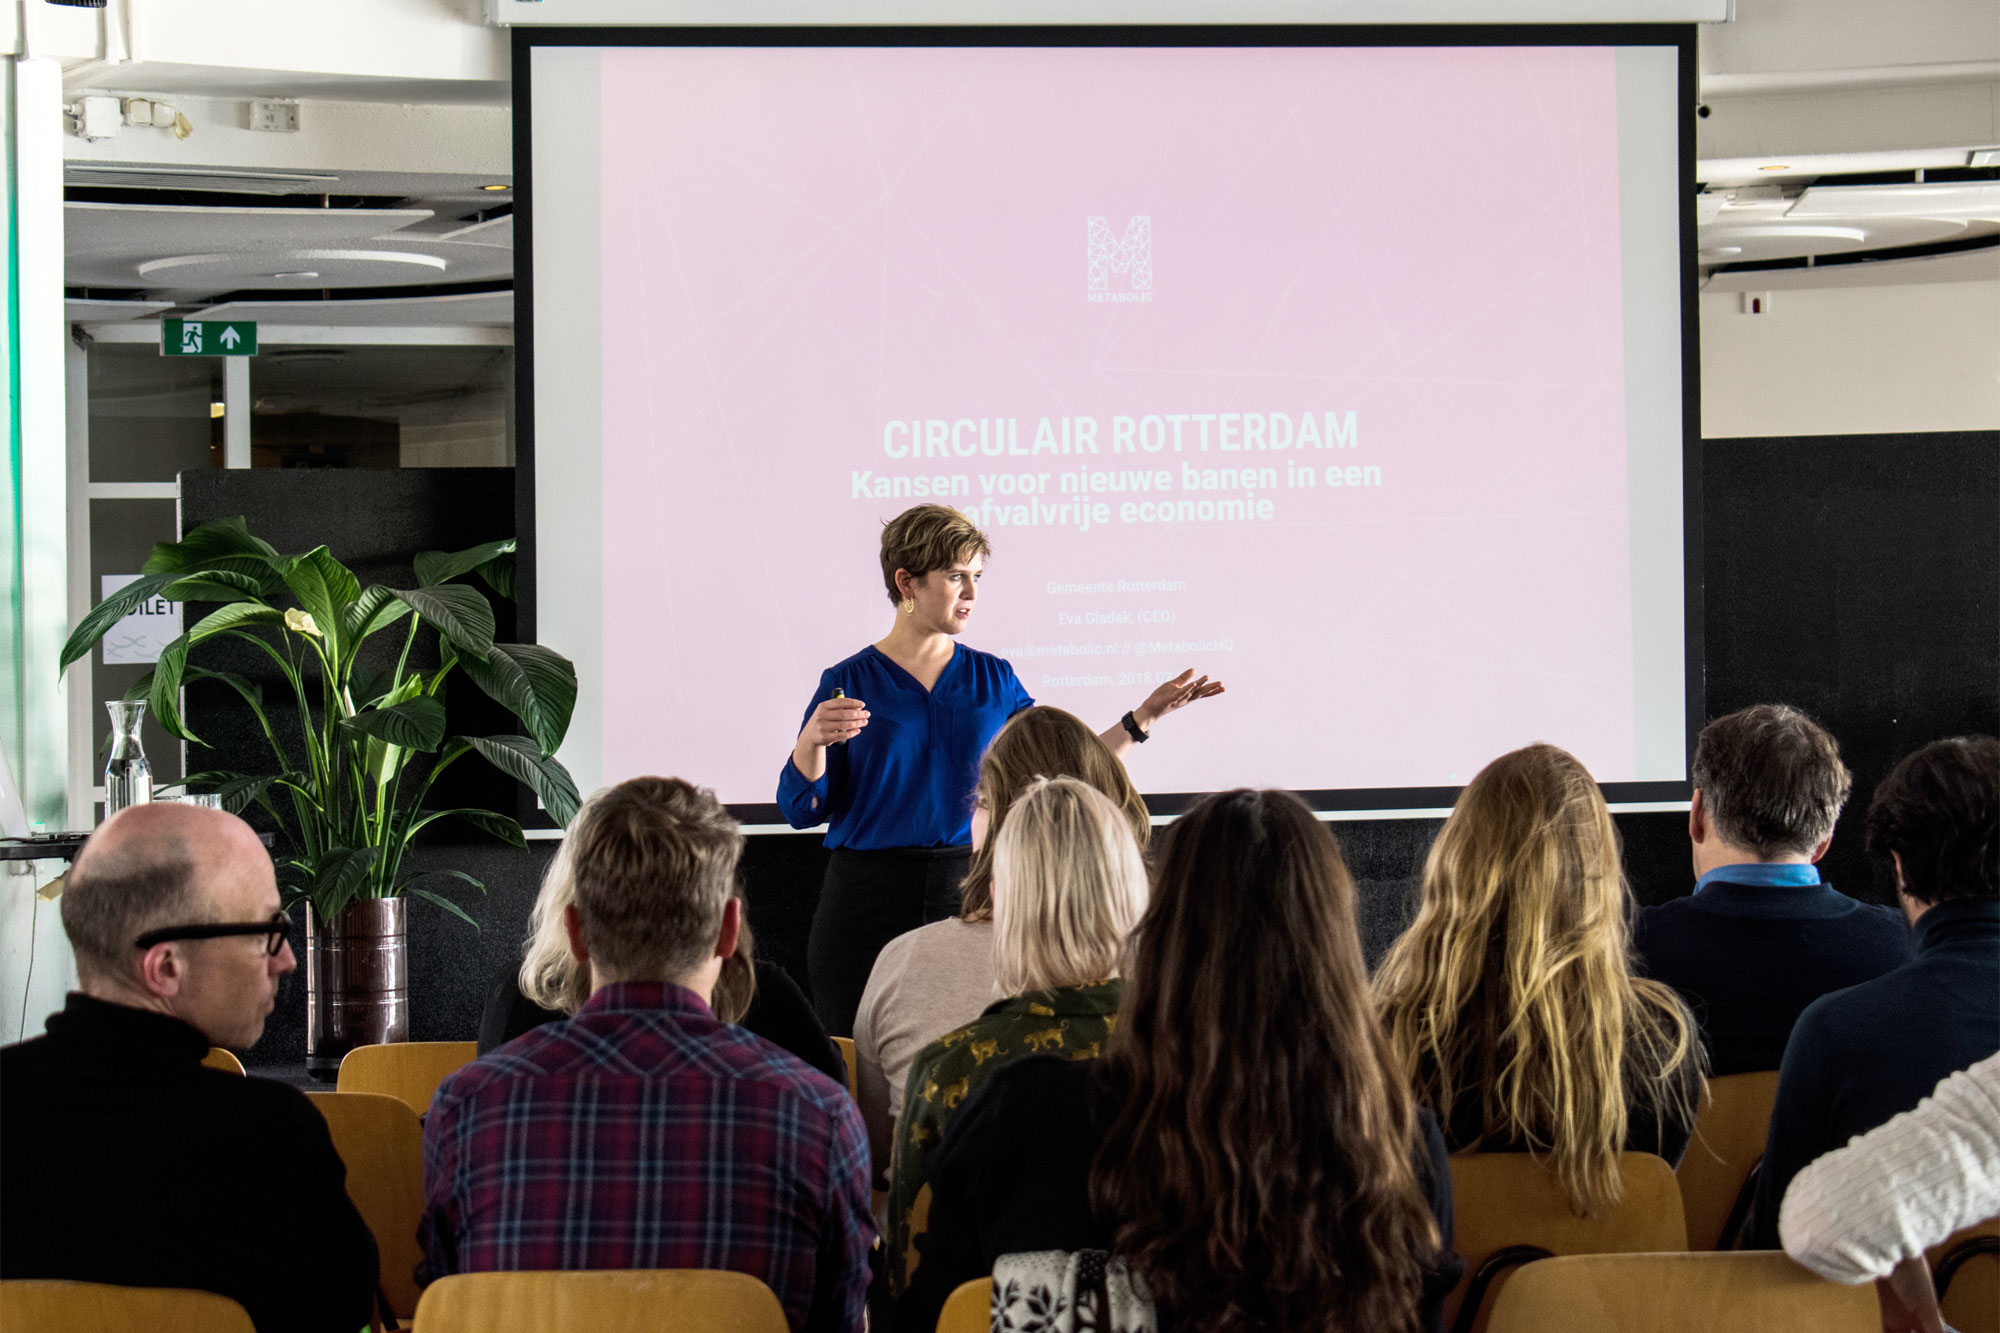 Metabolic CEO Eva Gladek presenting the Circular Rotterdam proposal.